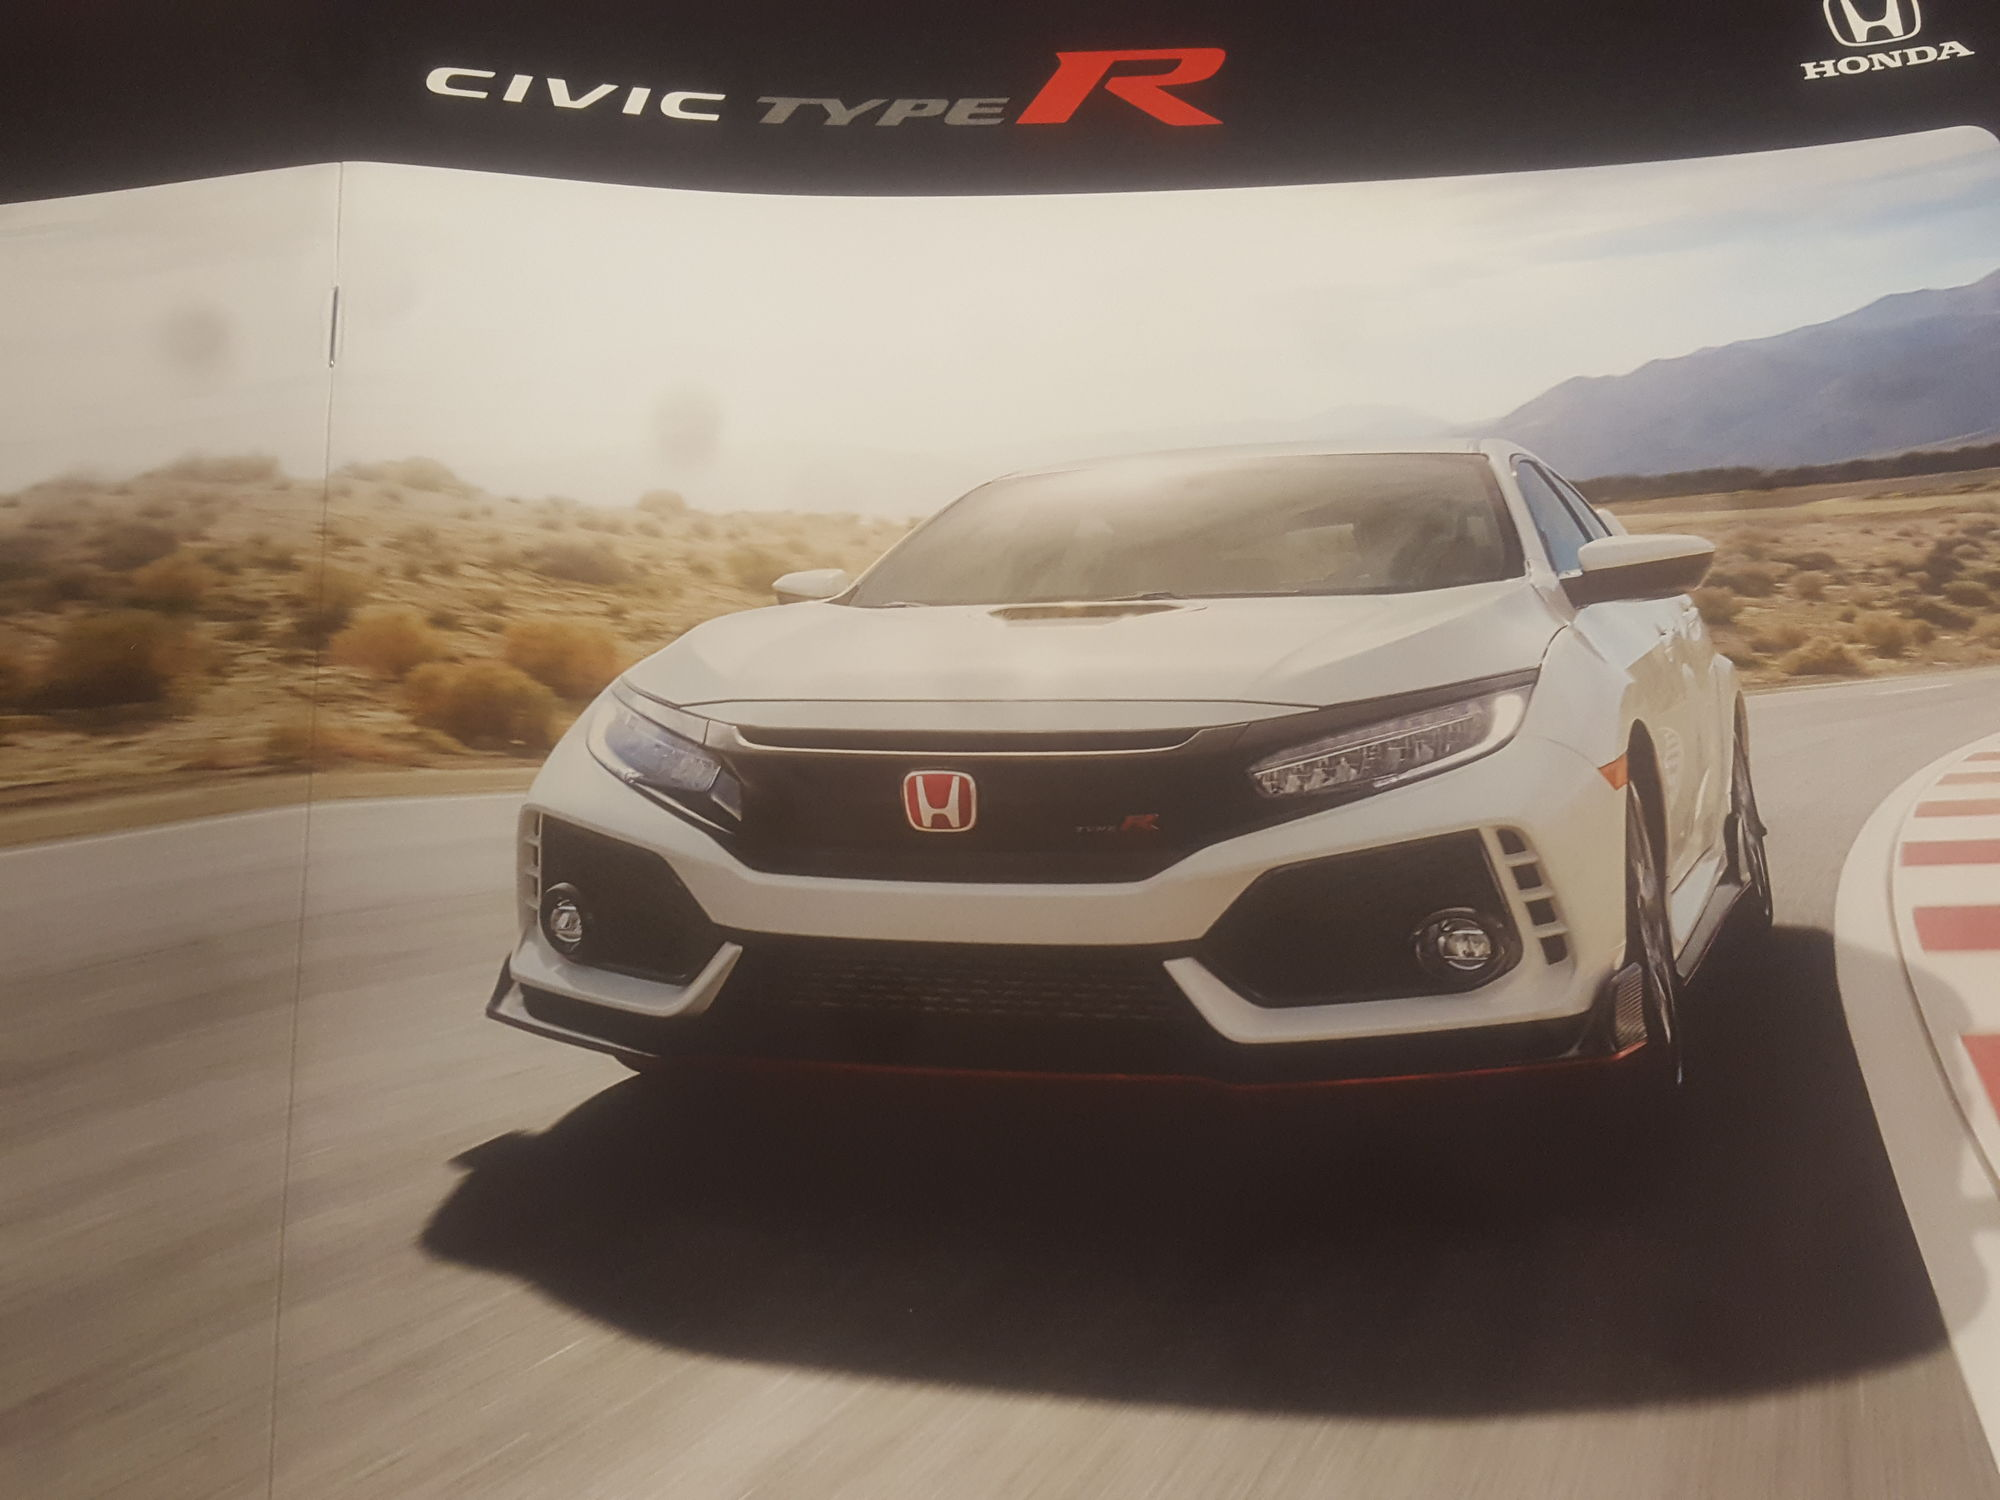 The civic type r page 3 honda tech honda forum for Honda civic type r near me